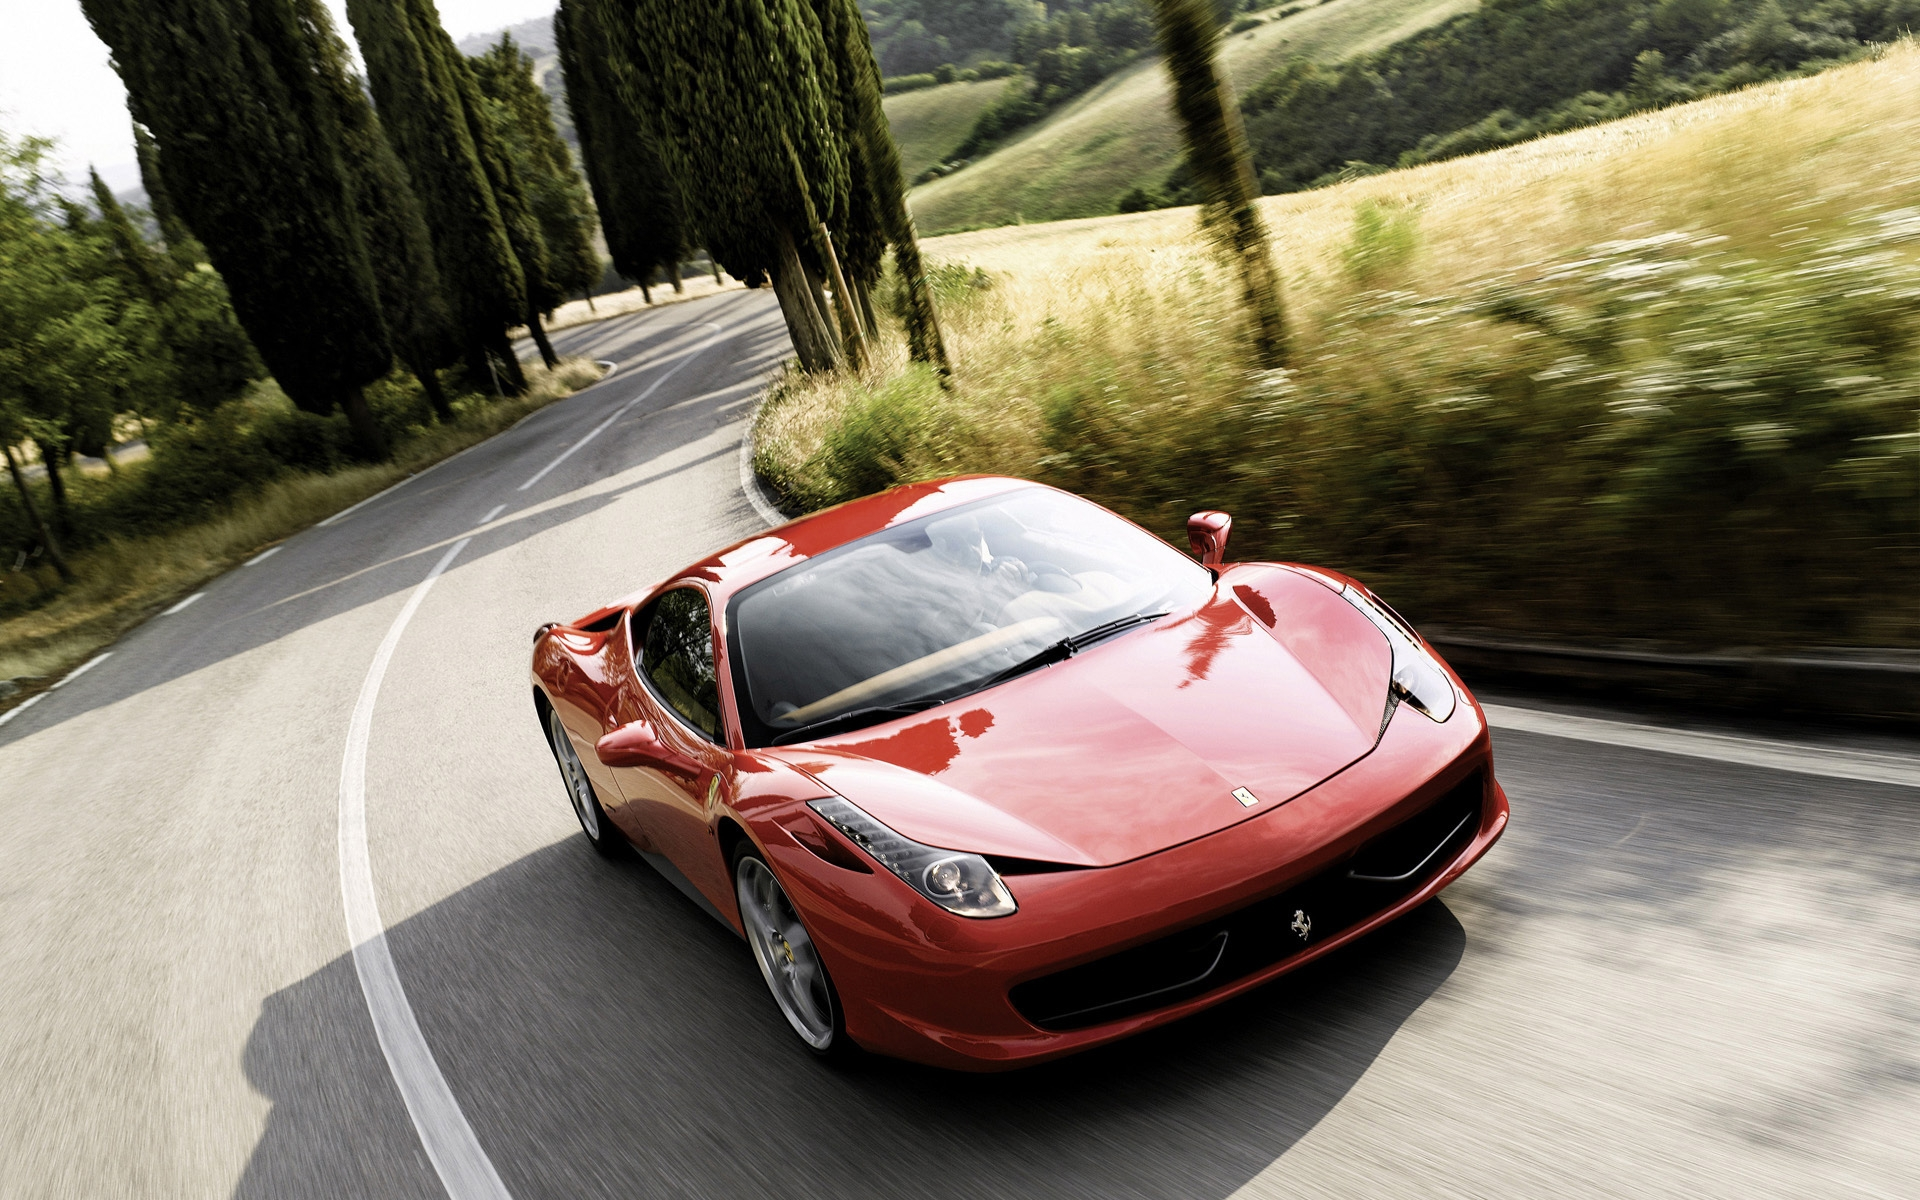 32379 download wallpaper Transport, Auto, Ferrari screensavers and pictures for free